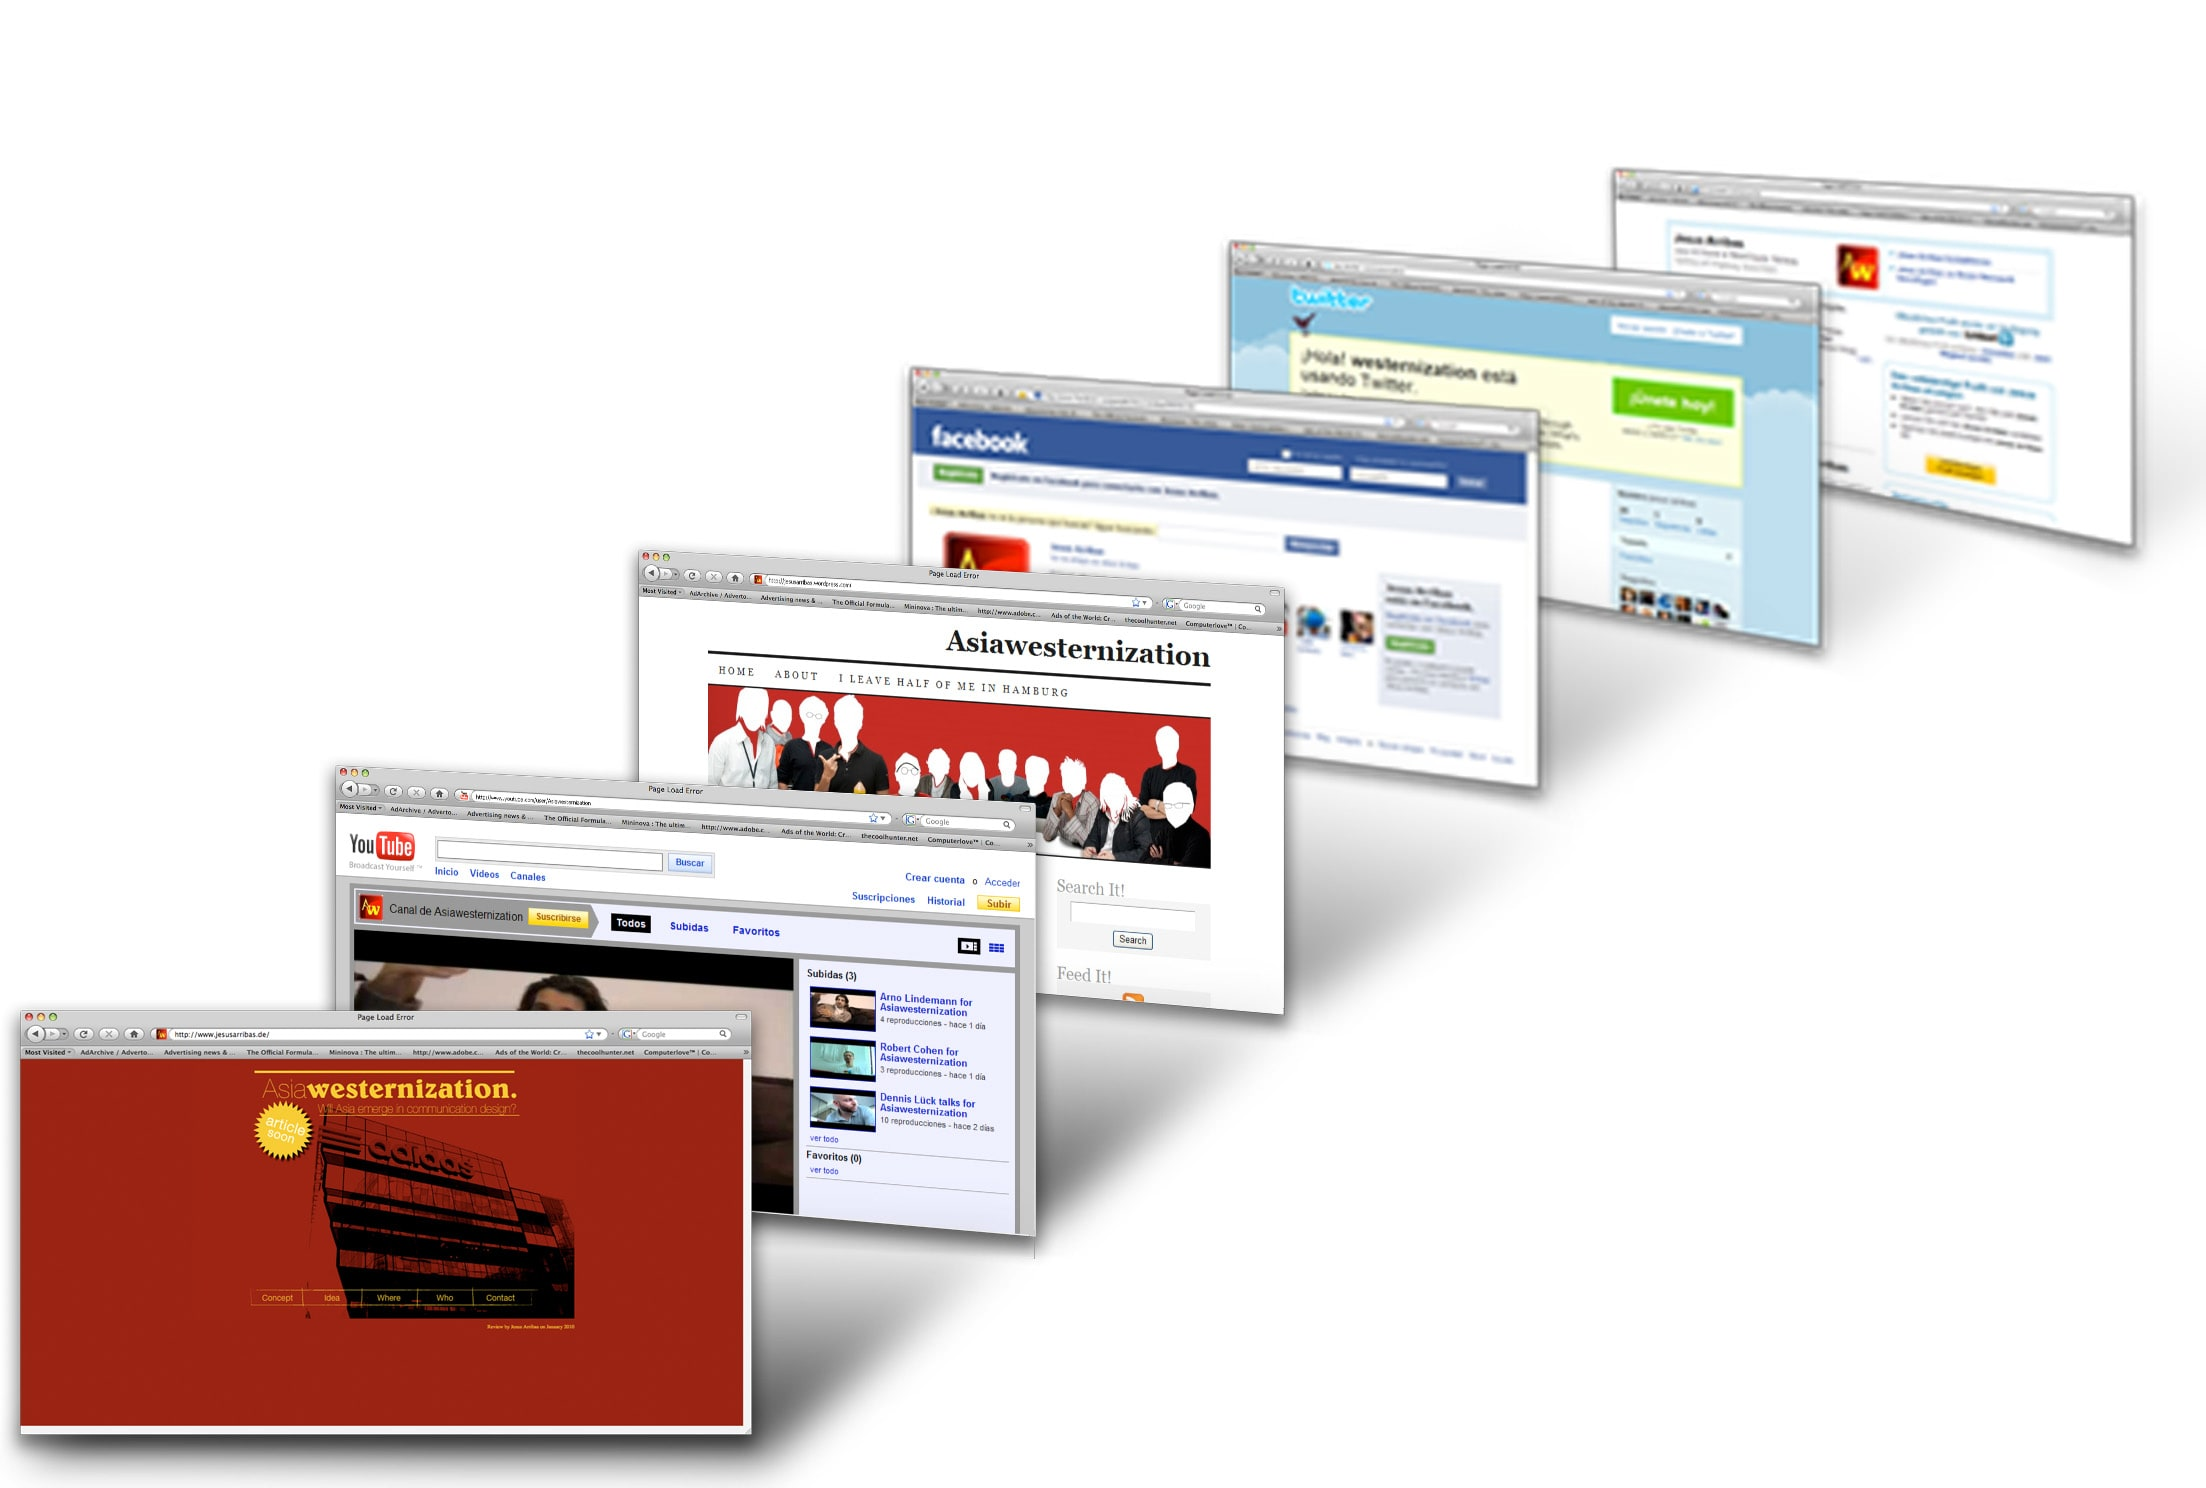 Universities Ensure That Their Web-Pages are Mobile-Friendly